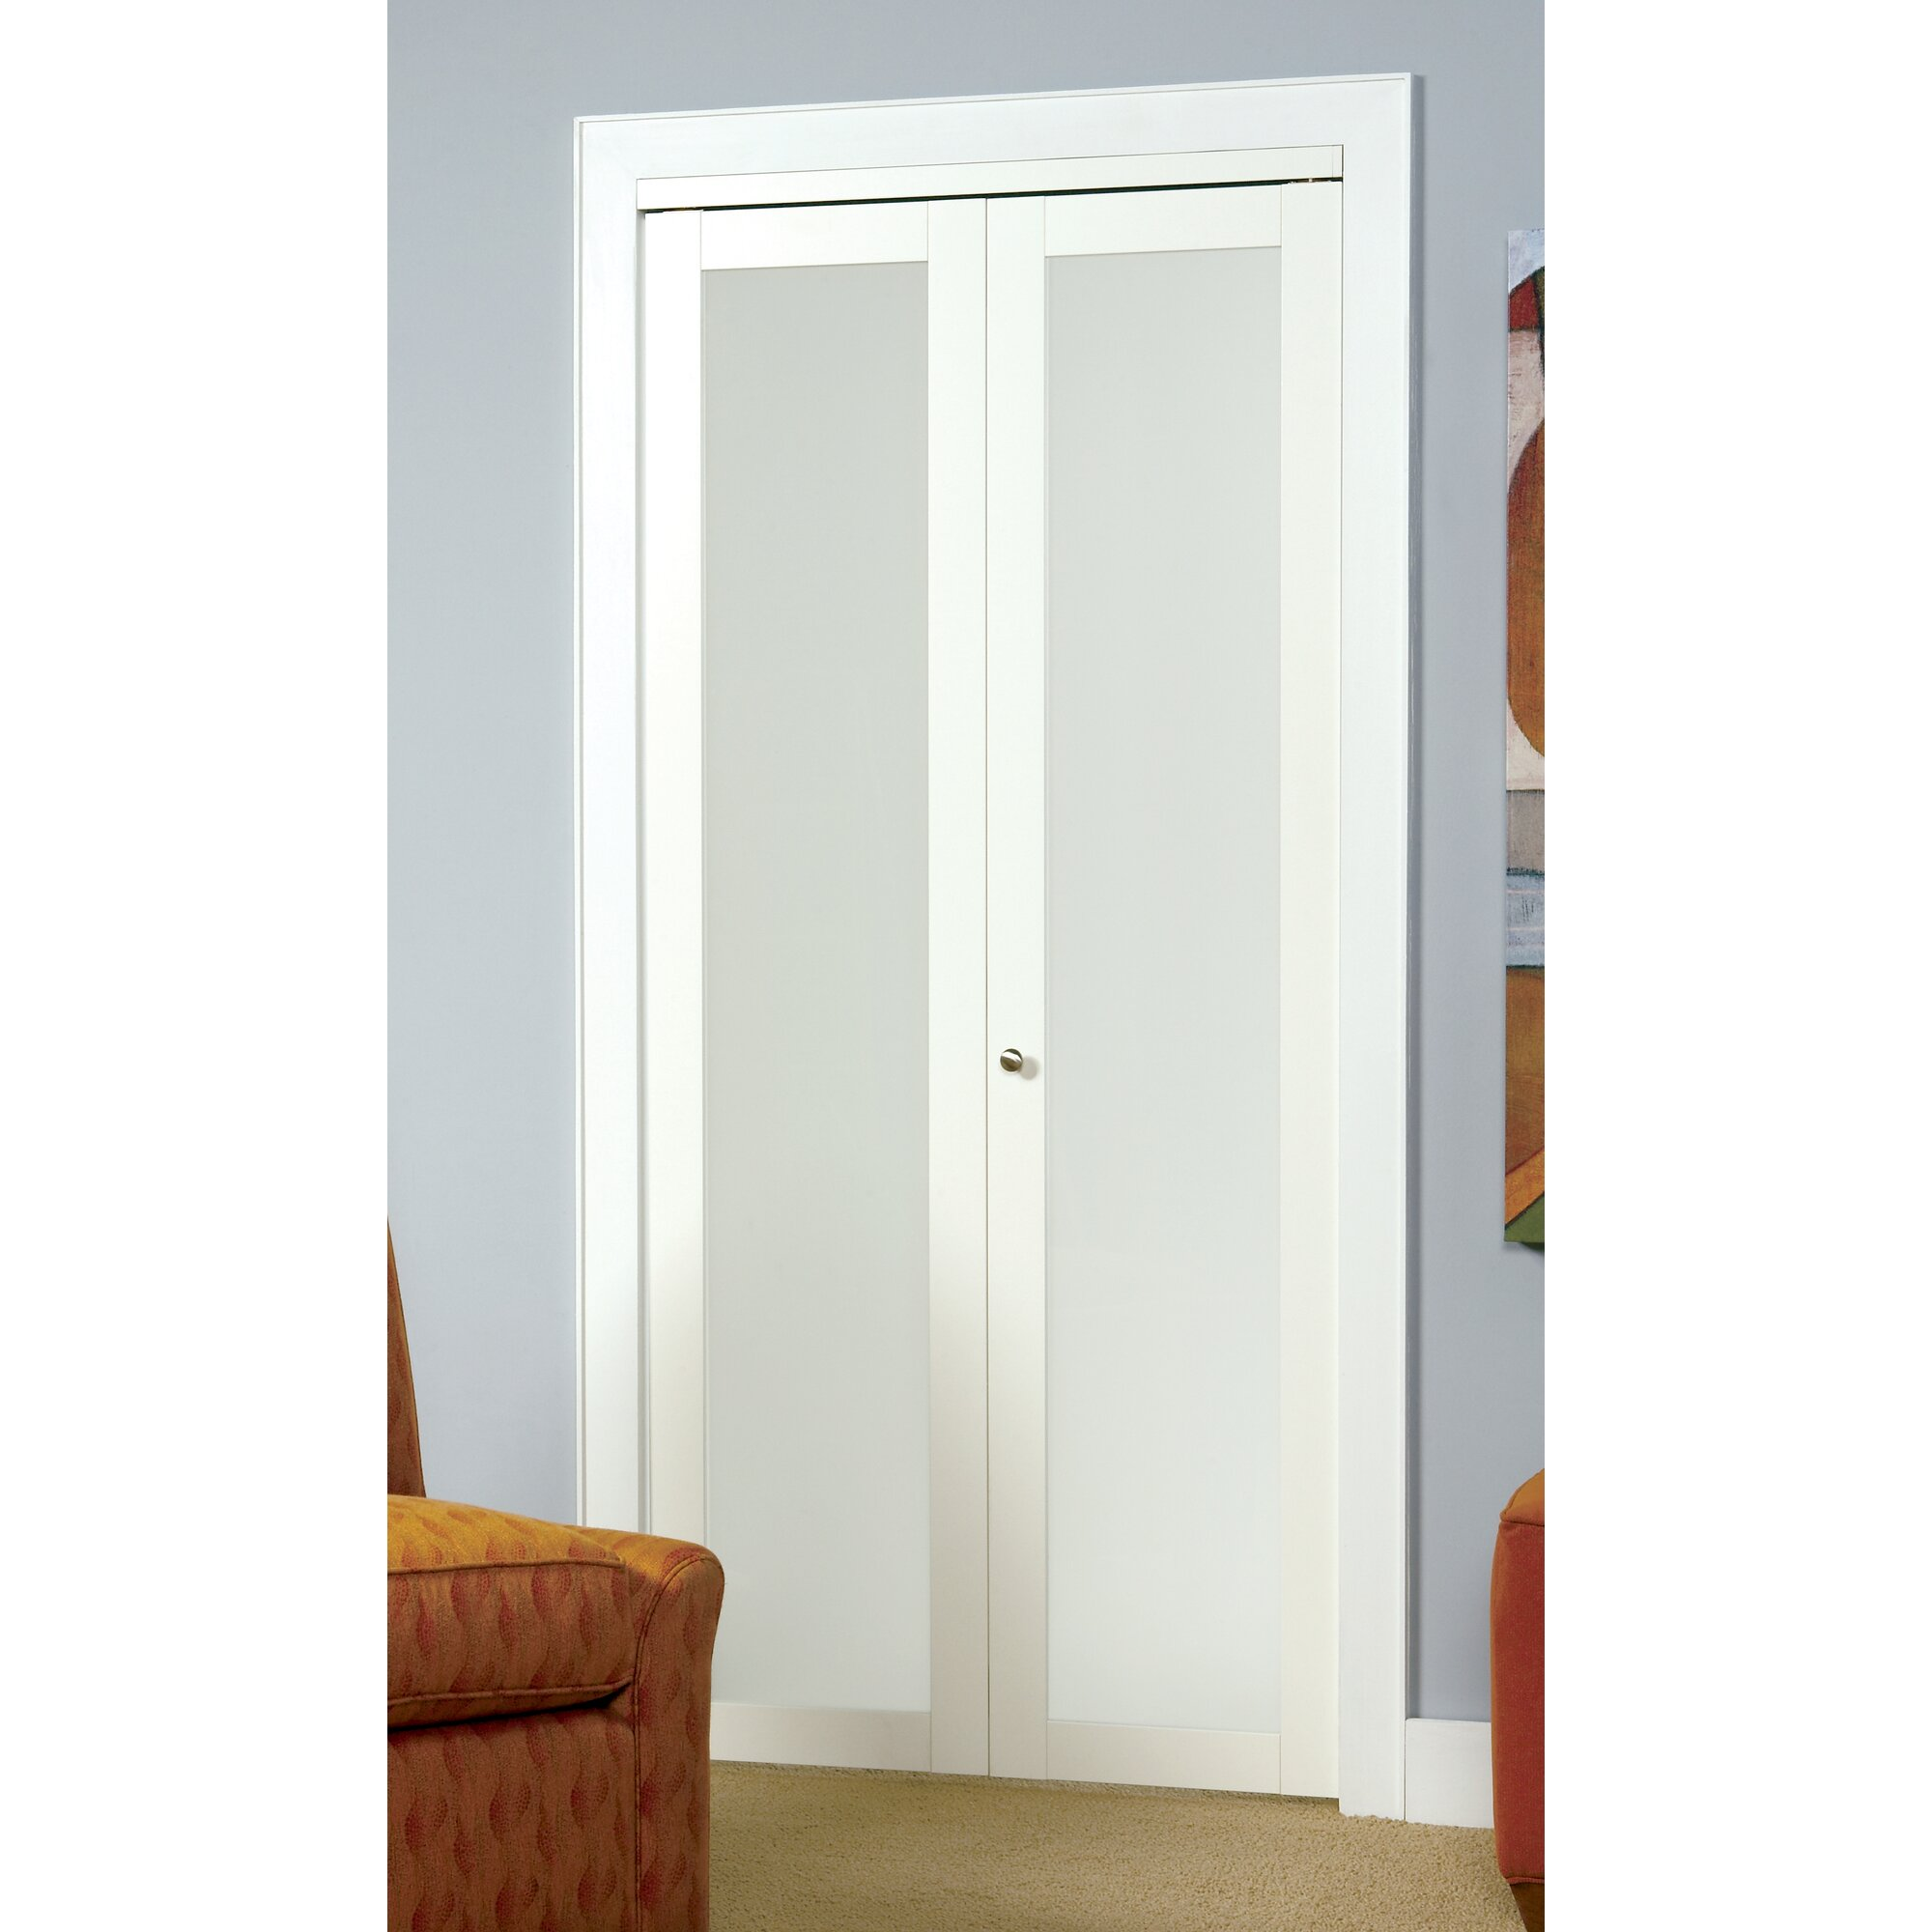 baldarassario wood 2 panel painted bi fold interior door - Erias Home Designs